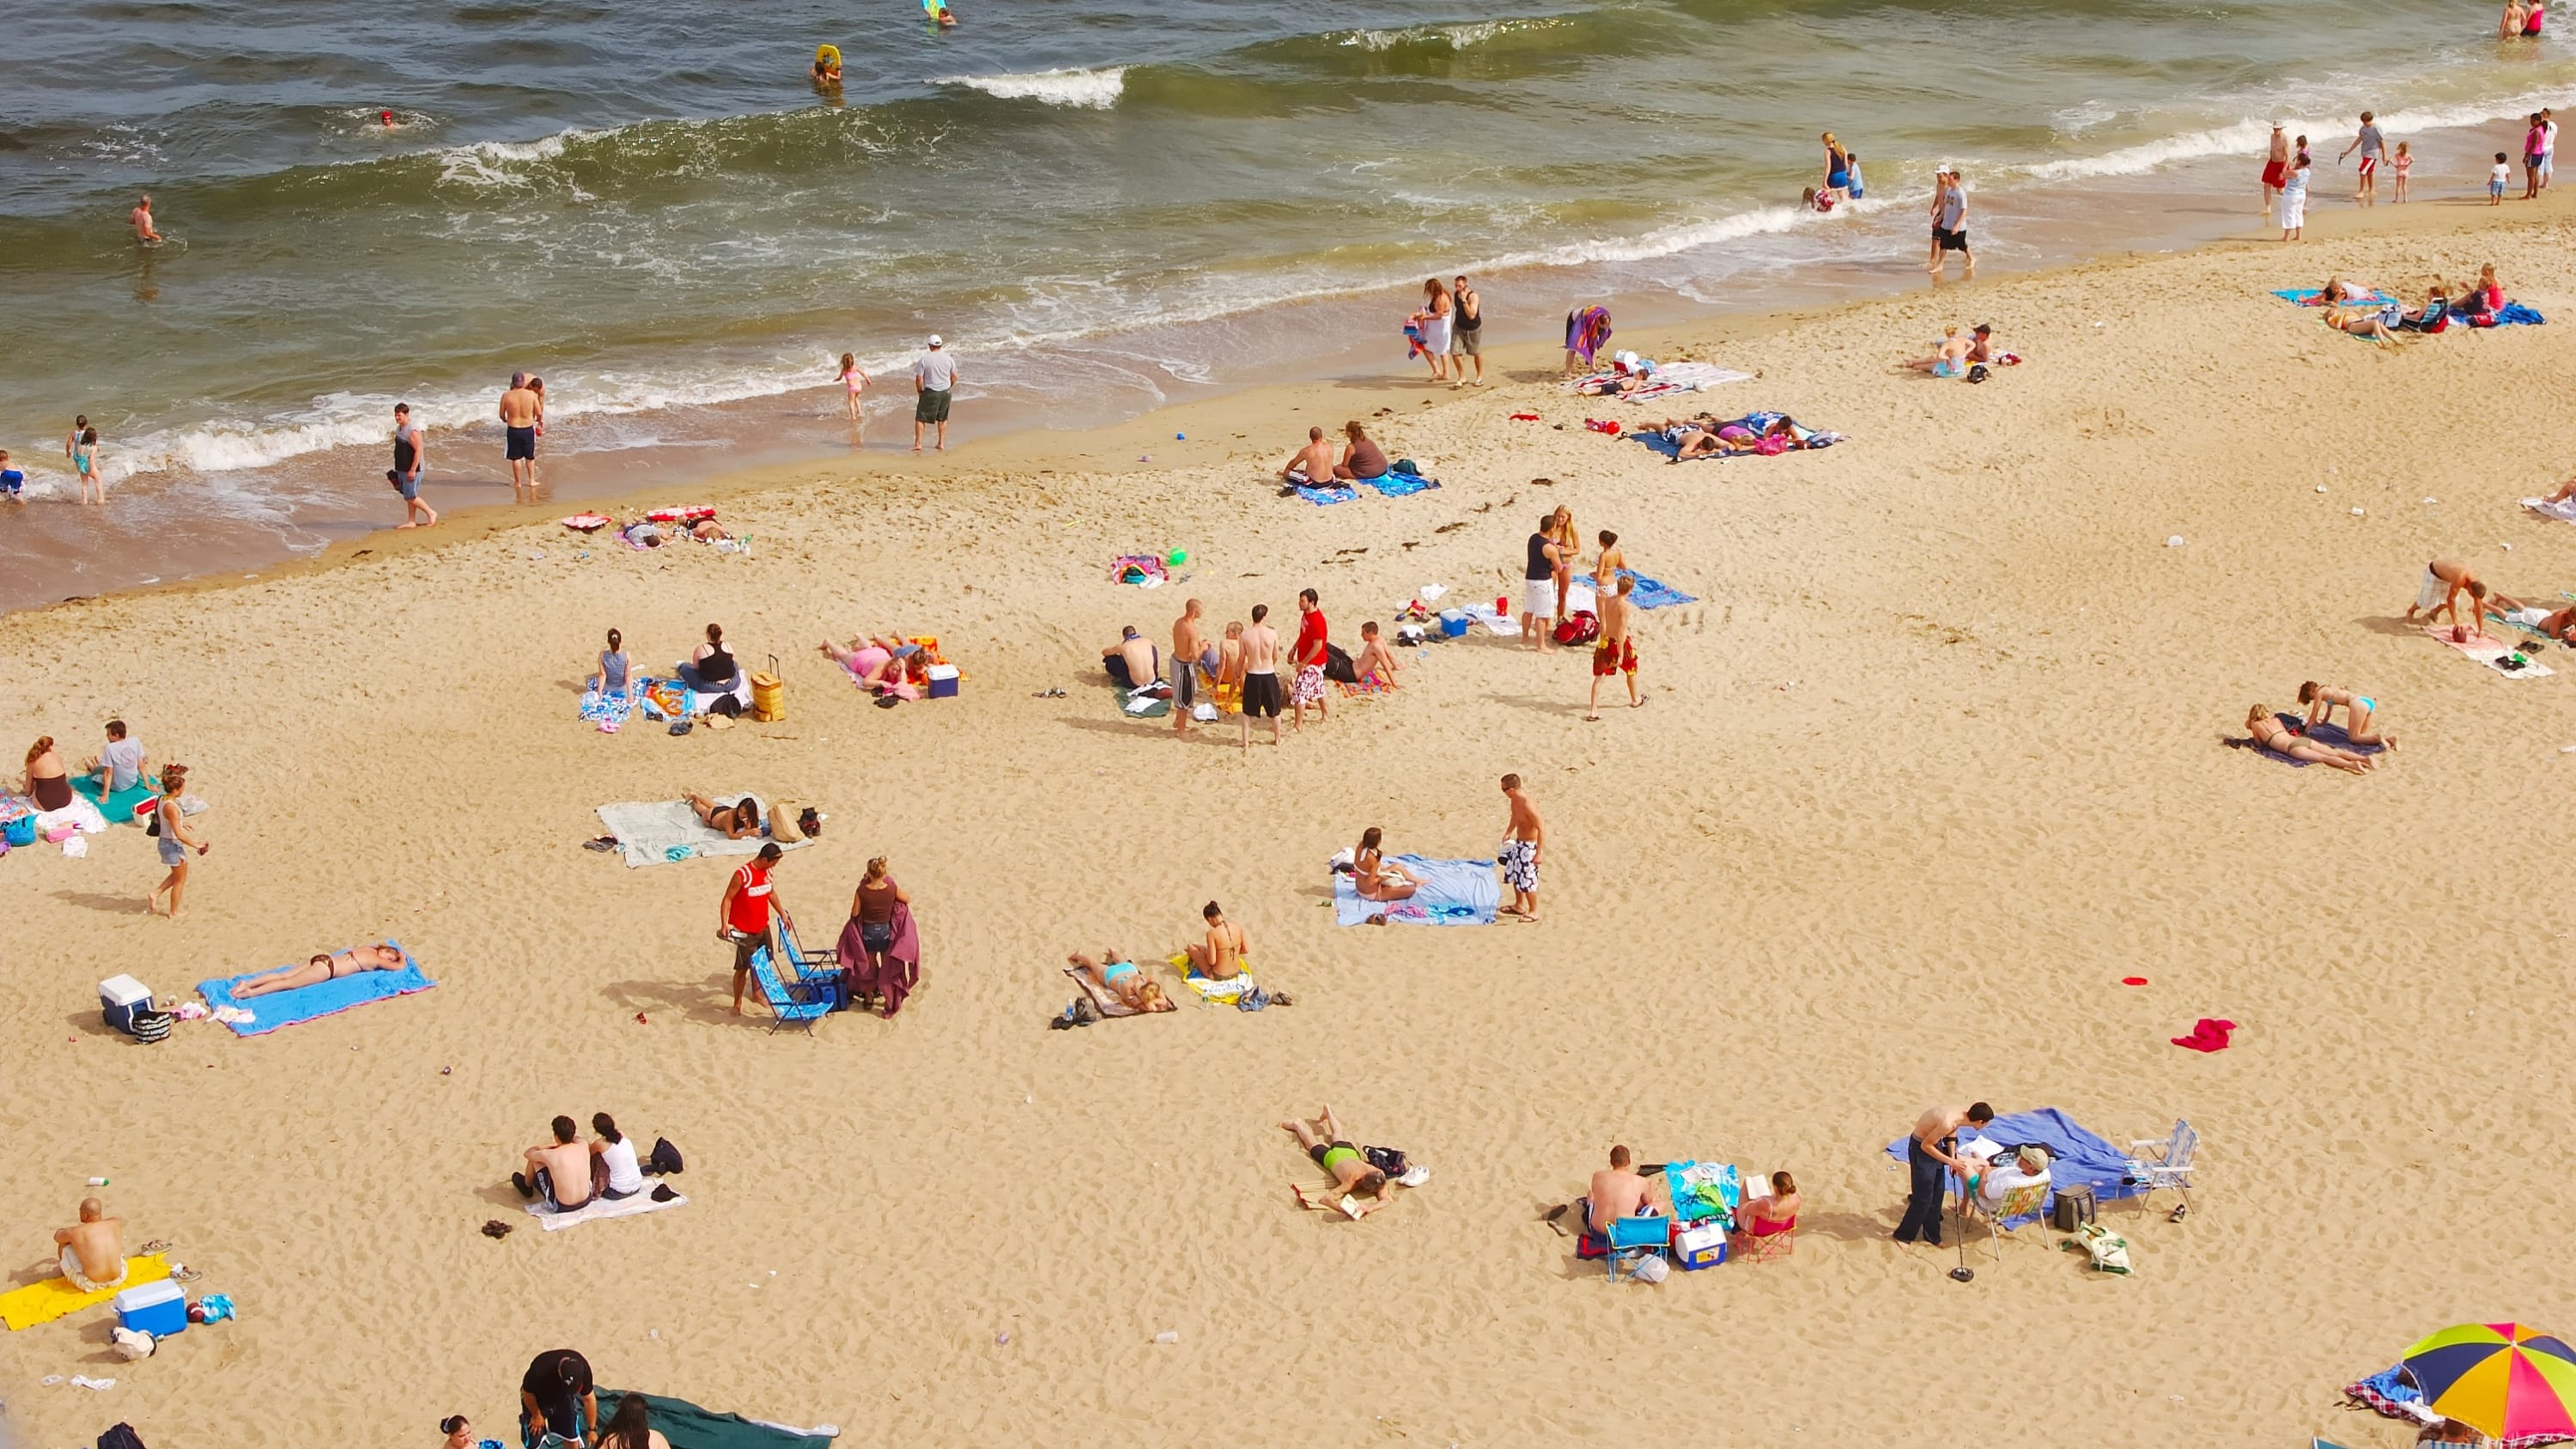 people at a crowded beach, as the country reopens amid COVID-19